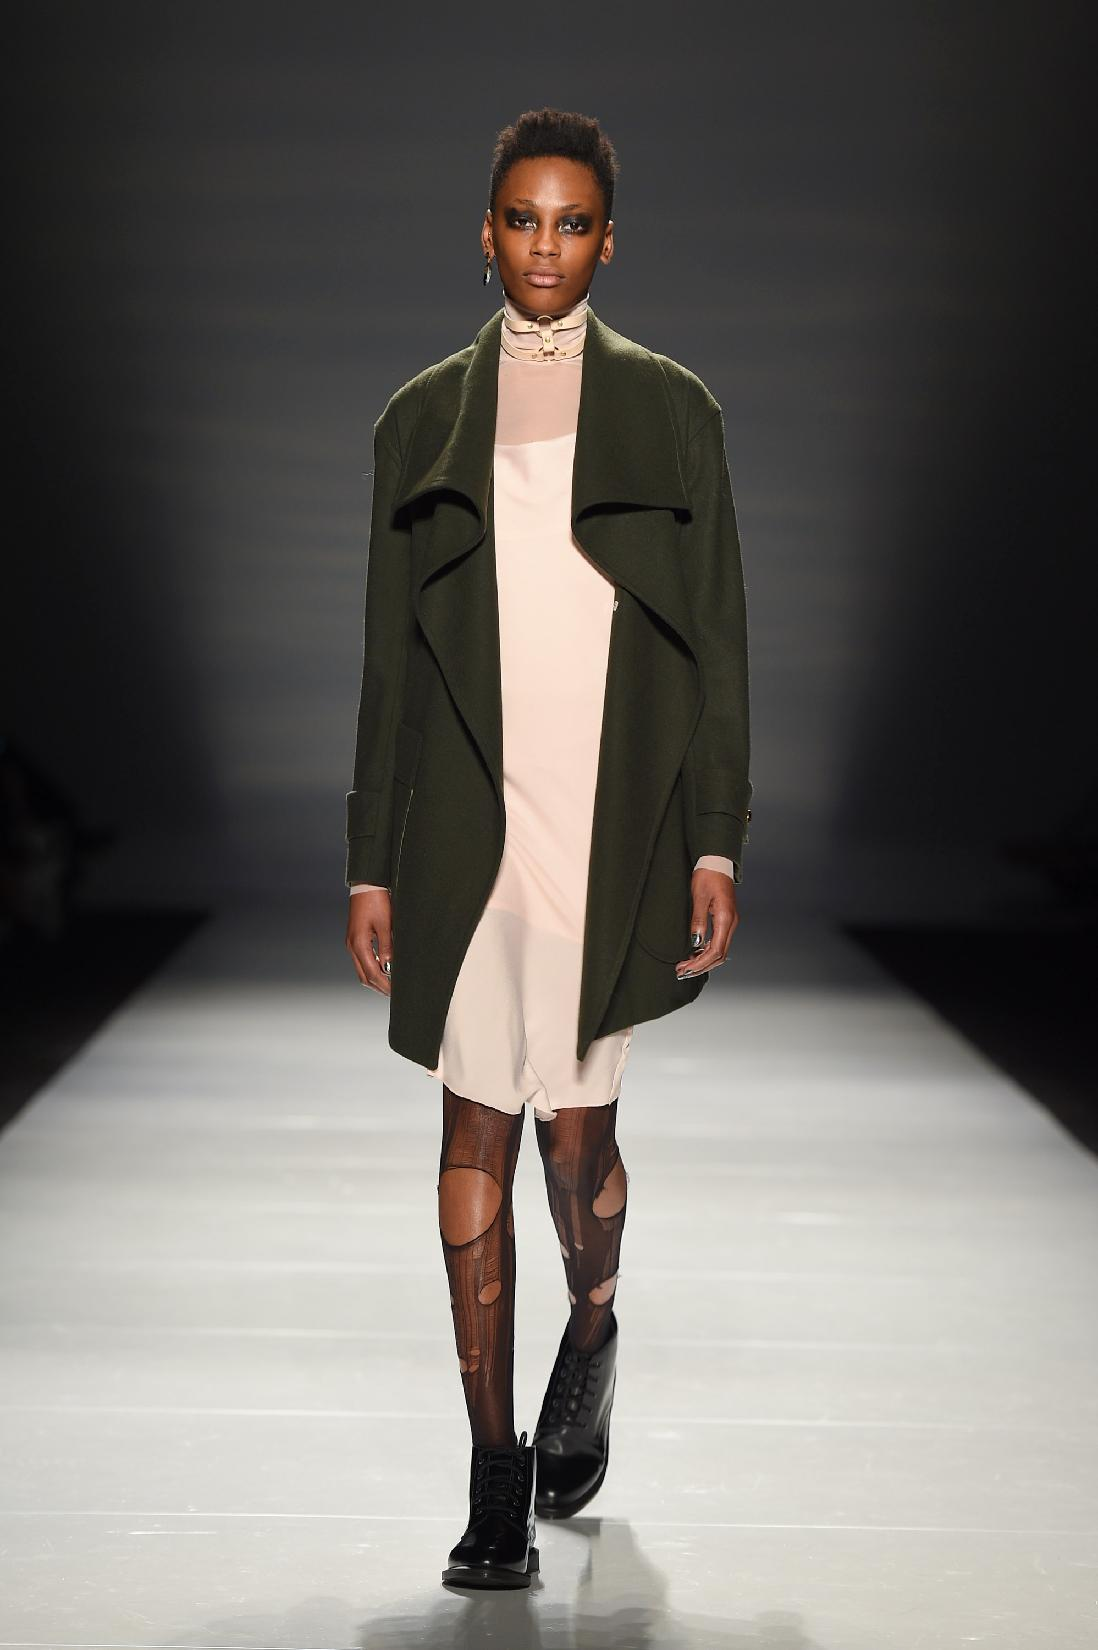 Every look from Helder Diego's fall 2016 collection